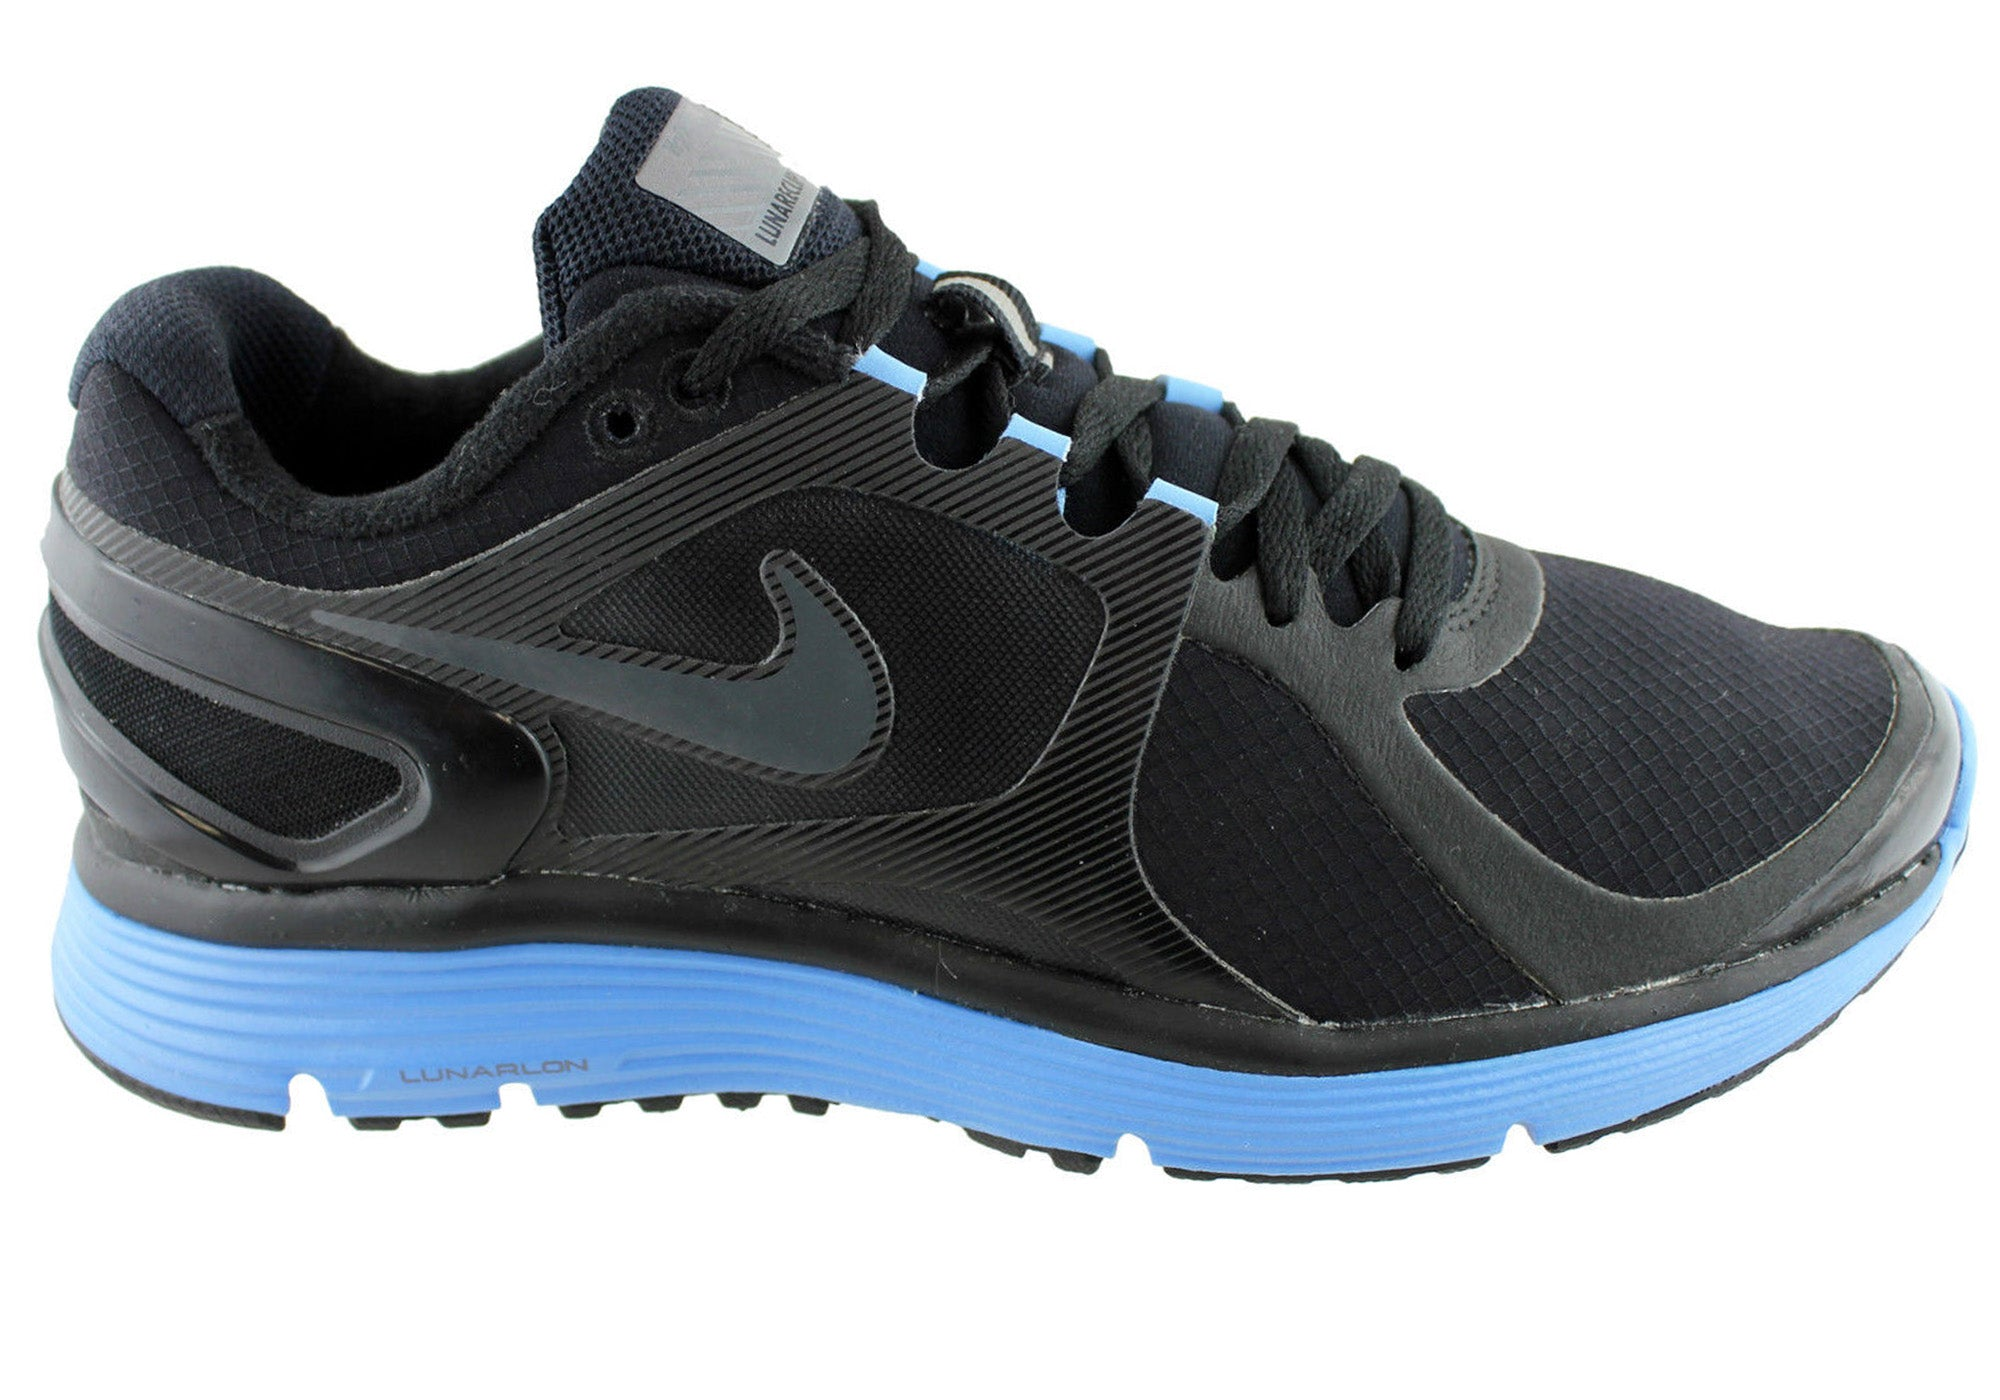 new style a3ed6 1f7bc Nike Womens Lunareclipse 2 Shield Running Cushioned Sport Shoes ...